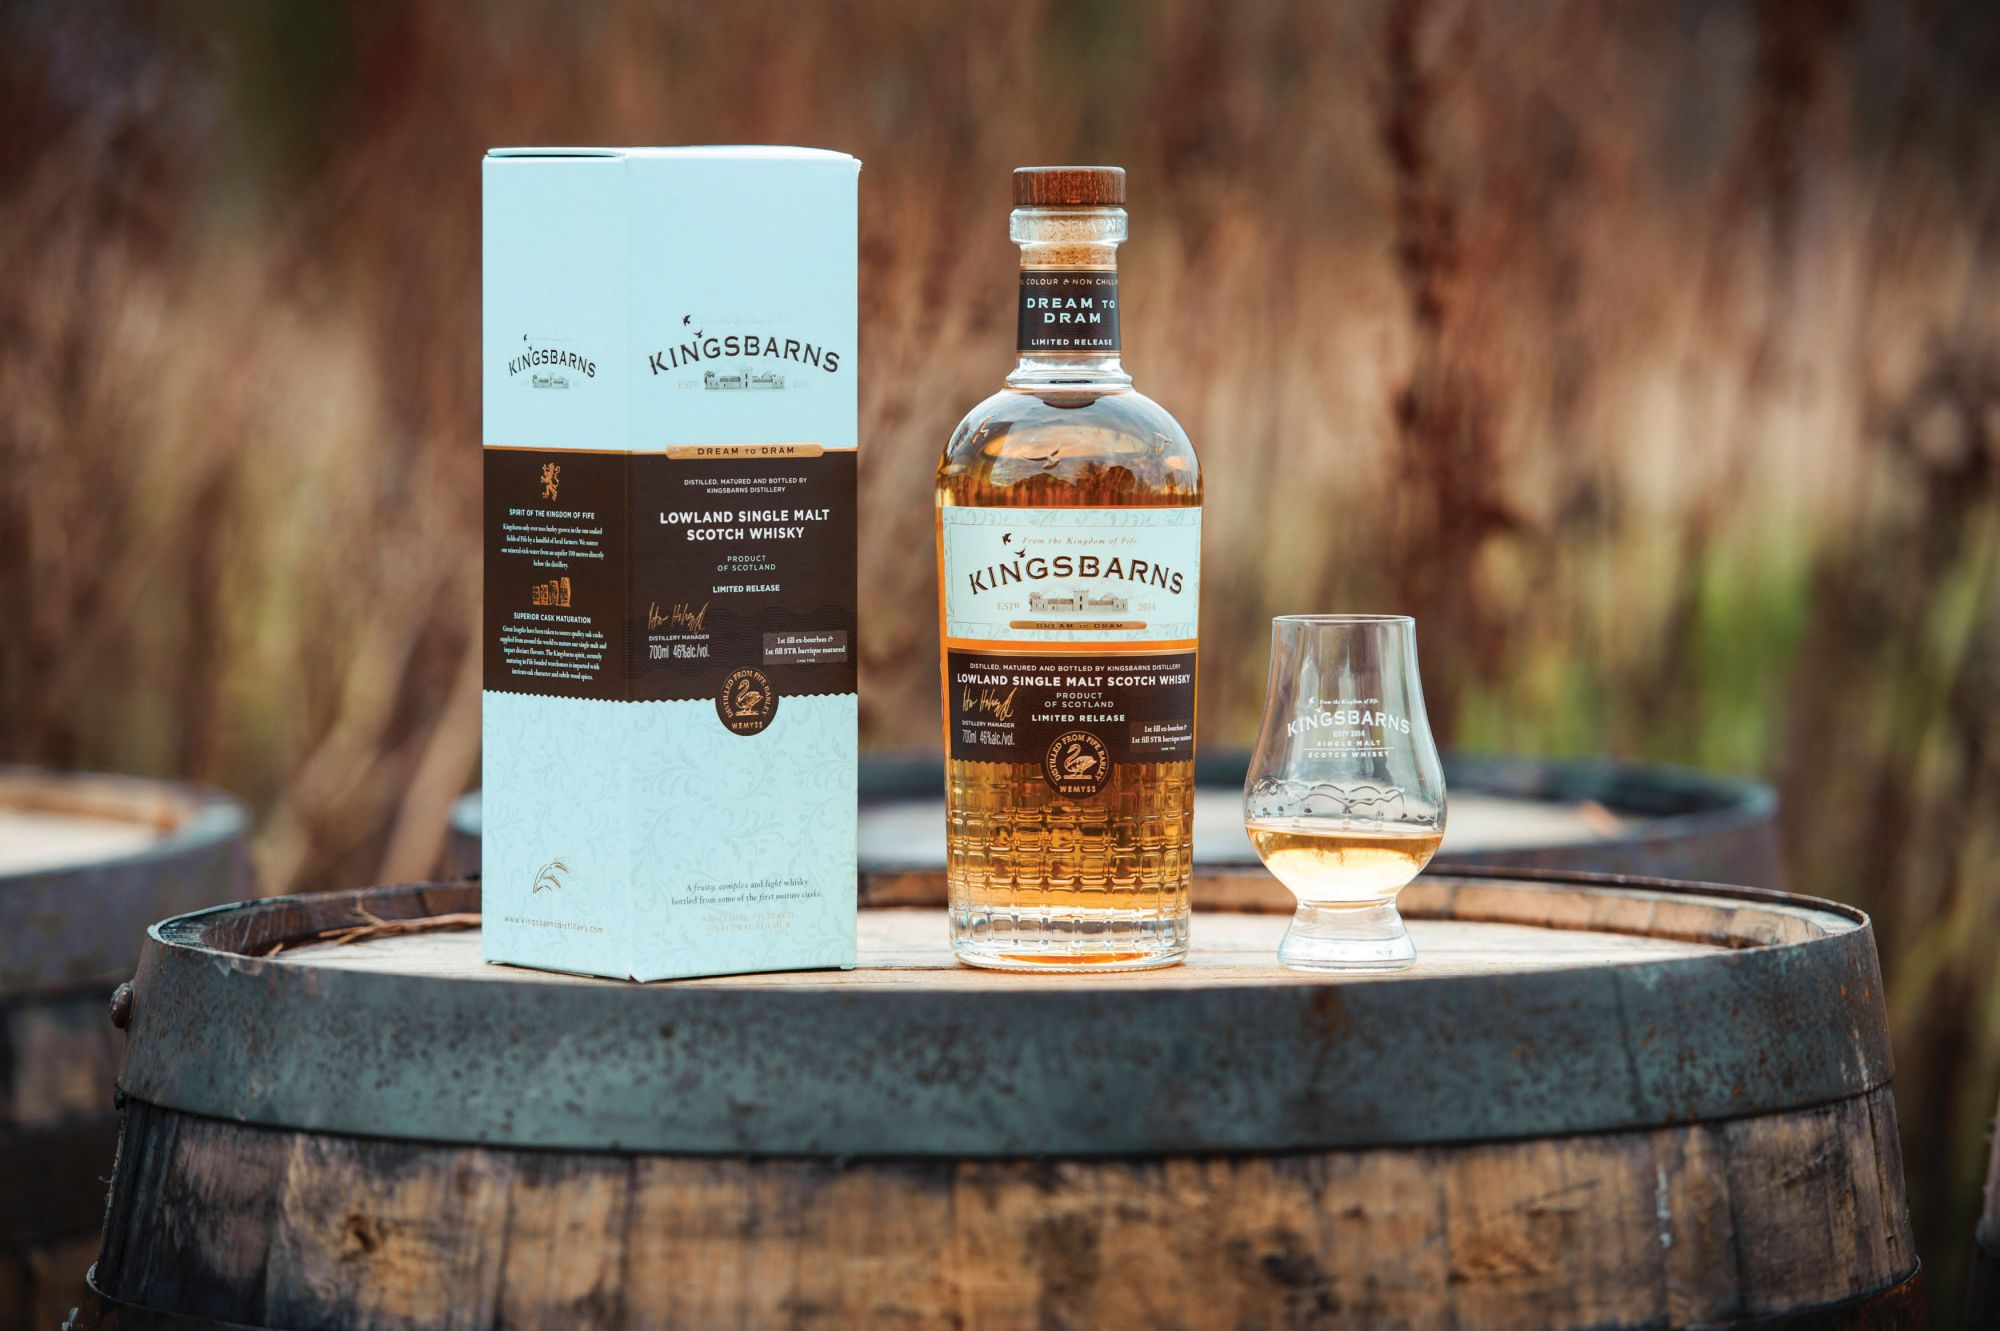 KINGSBARNS, UK - January 2018:  Kingsbarns distillery releases its first bottles of single malt Scotch whisky, a three-year-old matured in first-fill ex-Bourbon casks filled in 2015. The Dream to Dram release will be the first of five annual bottlings to be delivered to the distillery's members over the next few years.  (Photograph: MAVERICK PHOTO AGENCY)